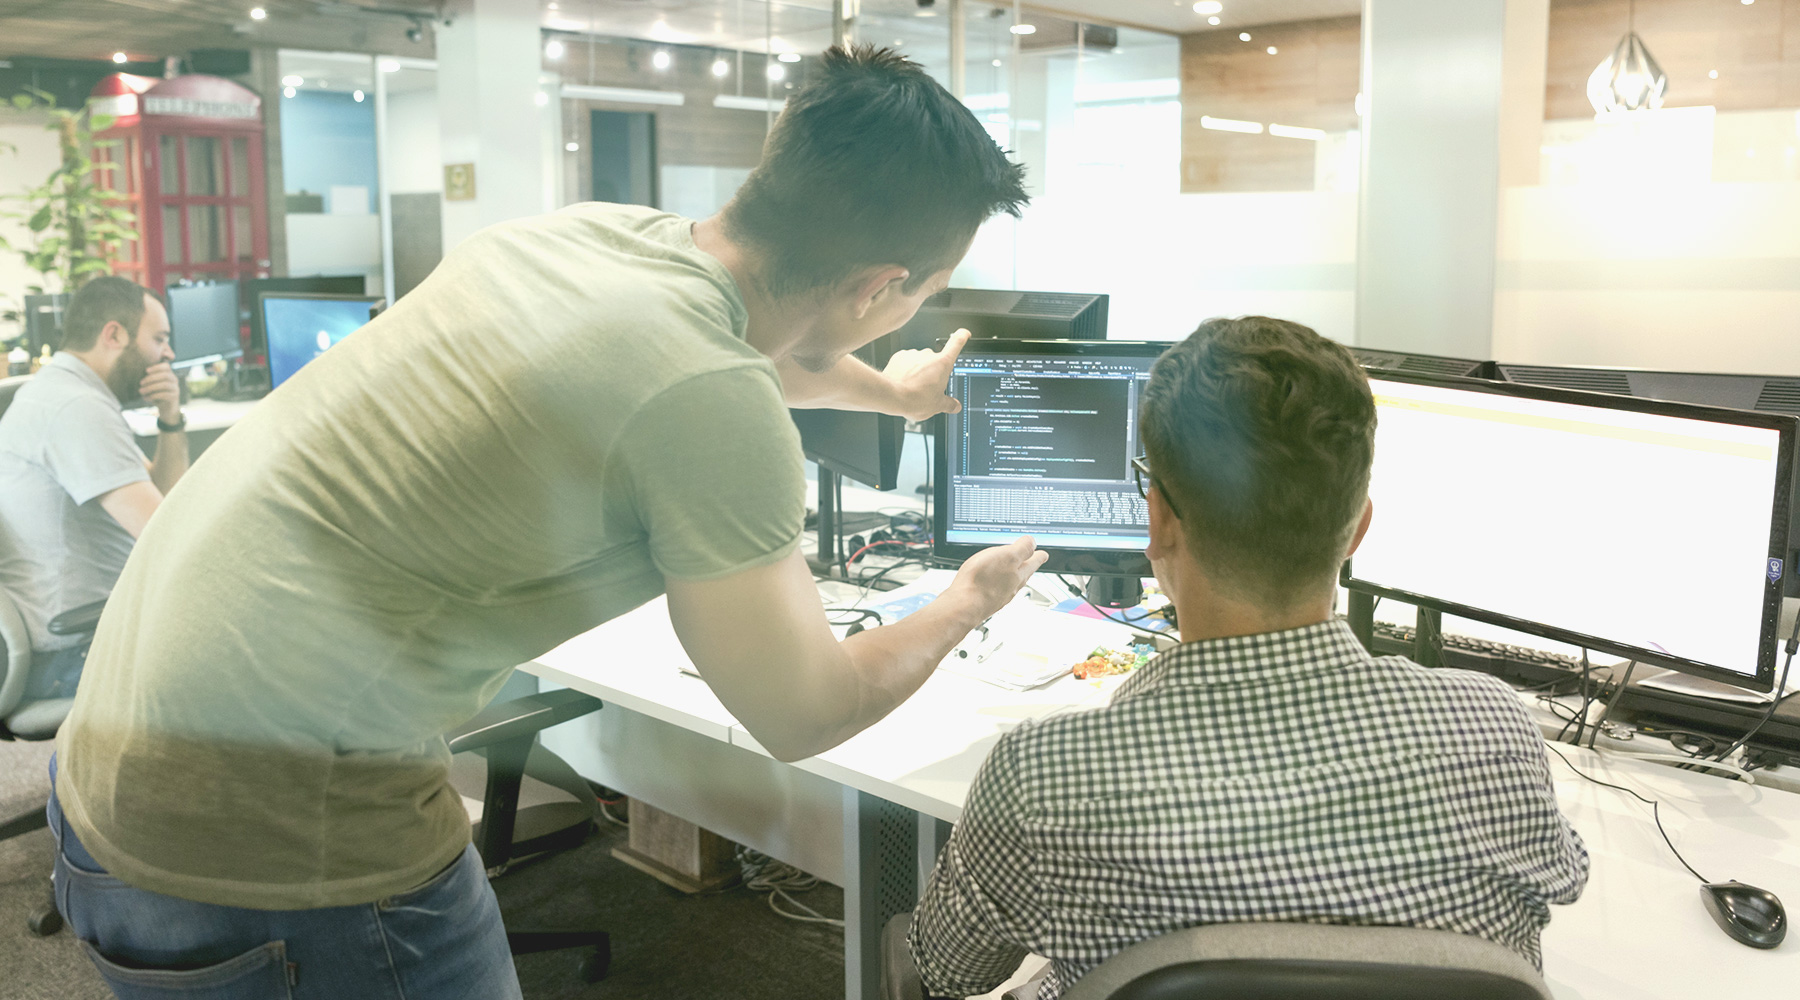 Two men looking at a computer screen at an office desk.